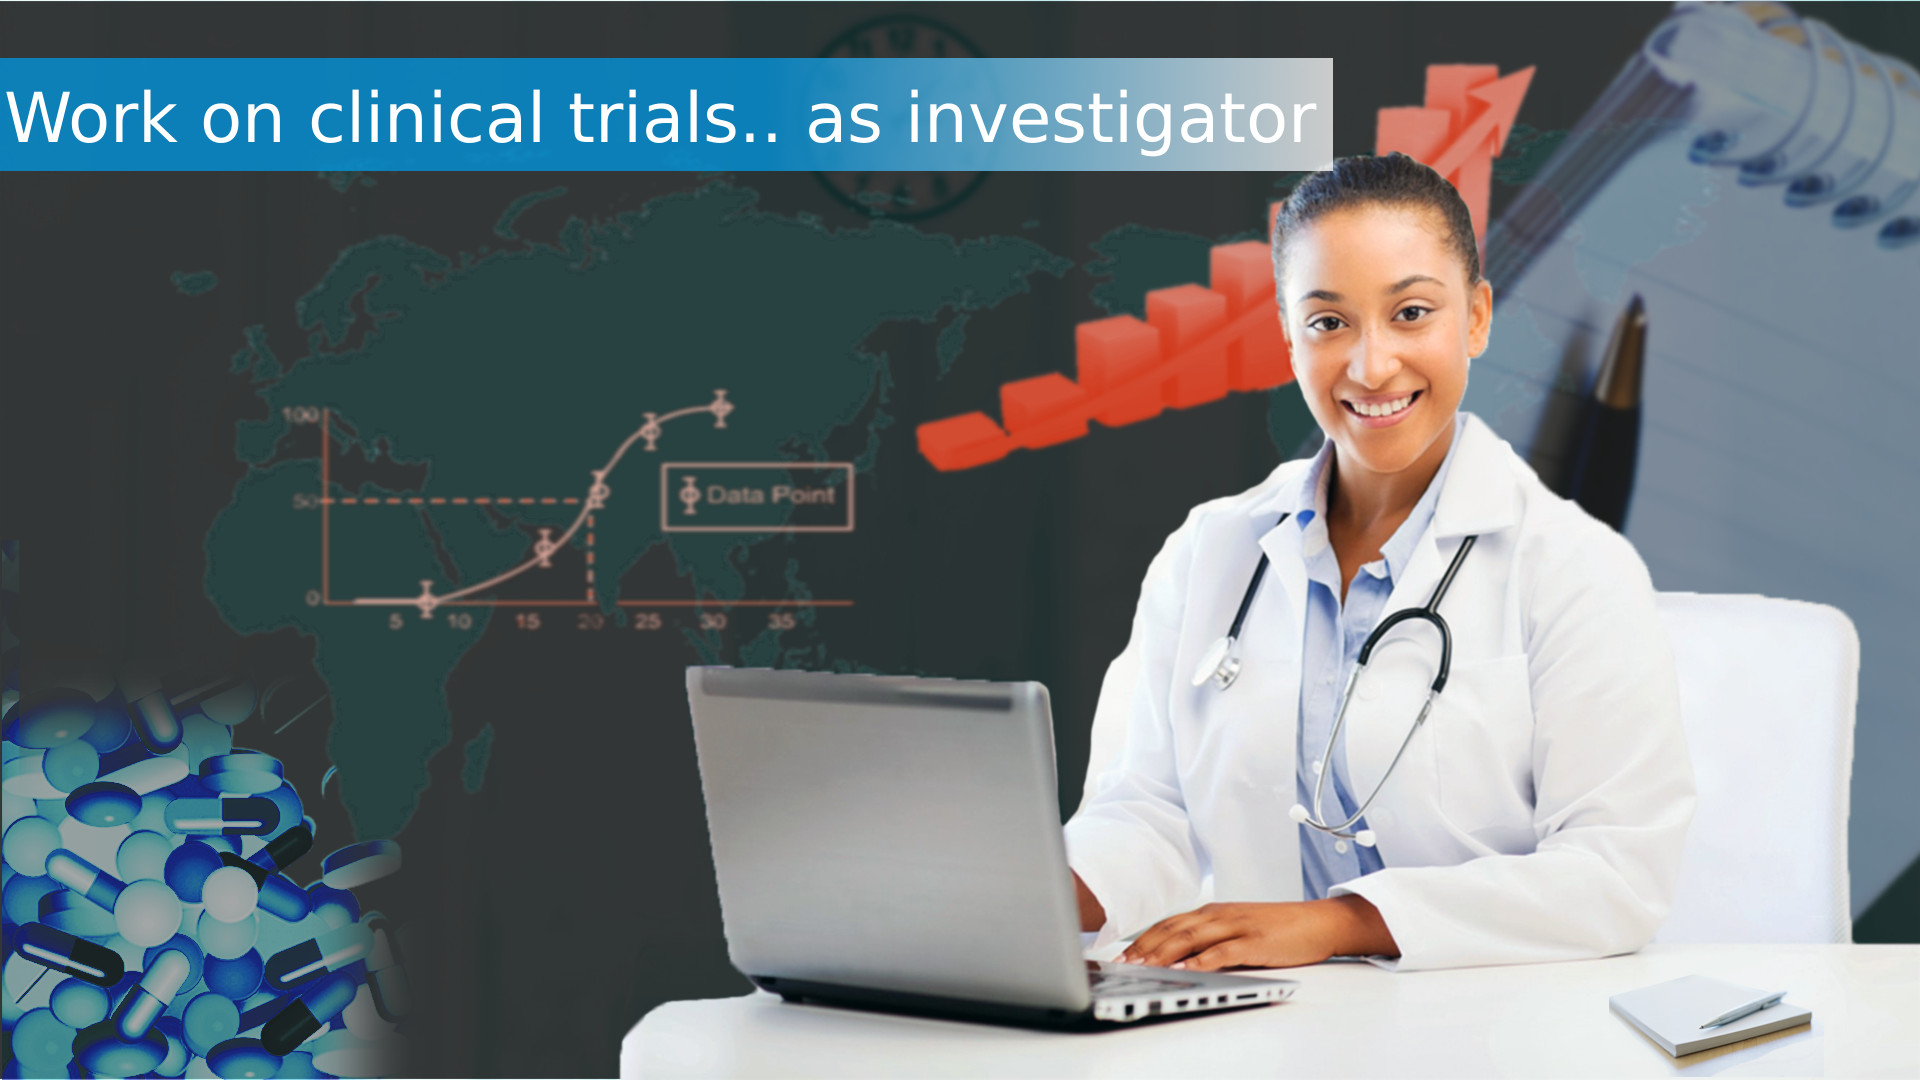 Find clinical trials to work as investigator